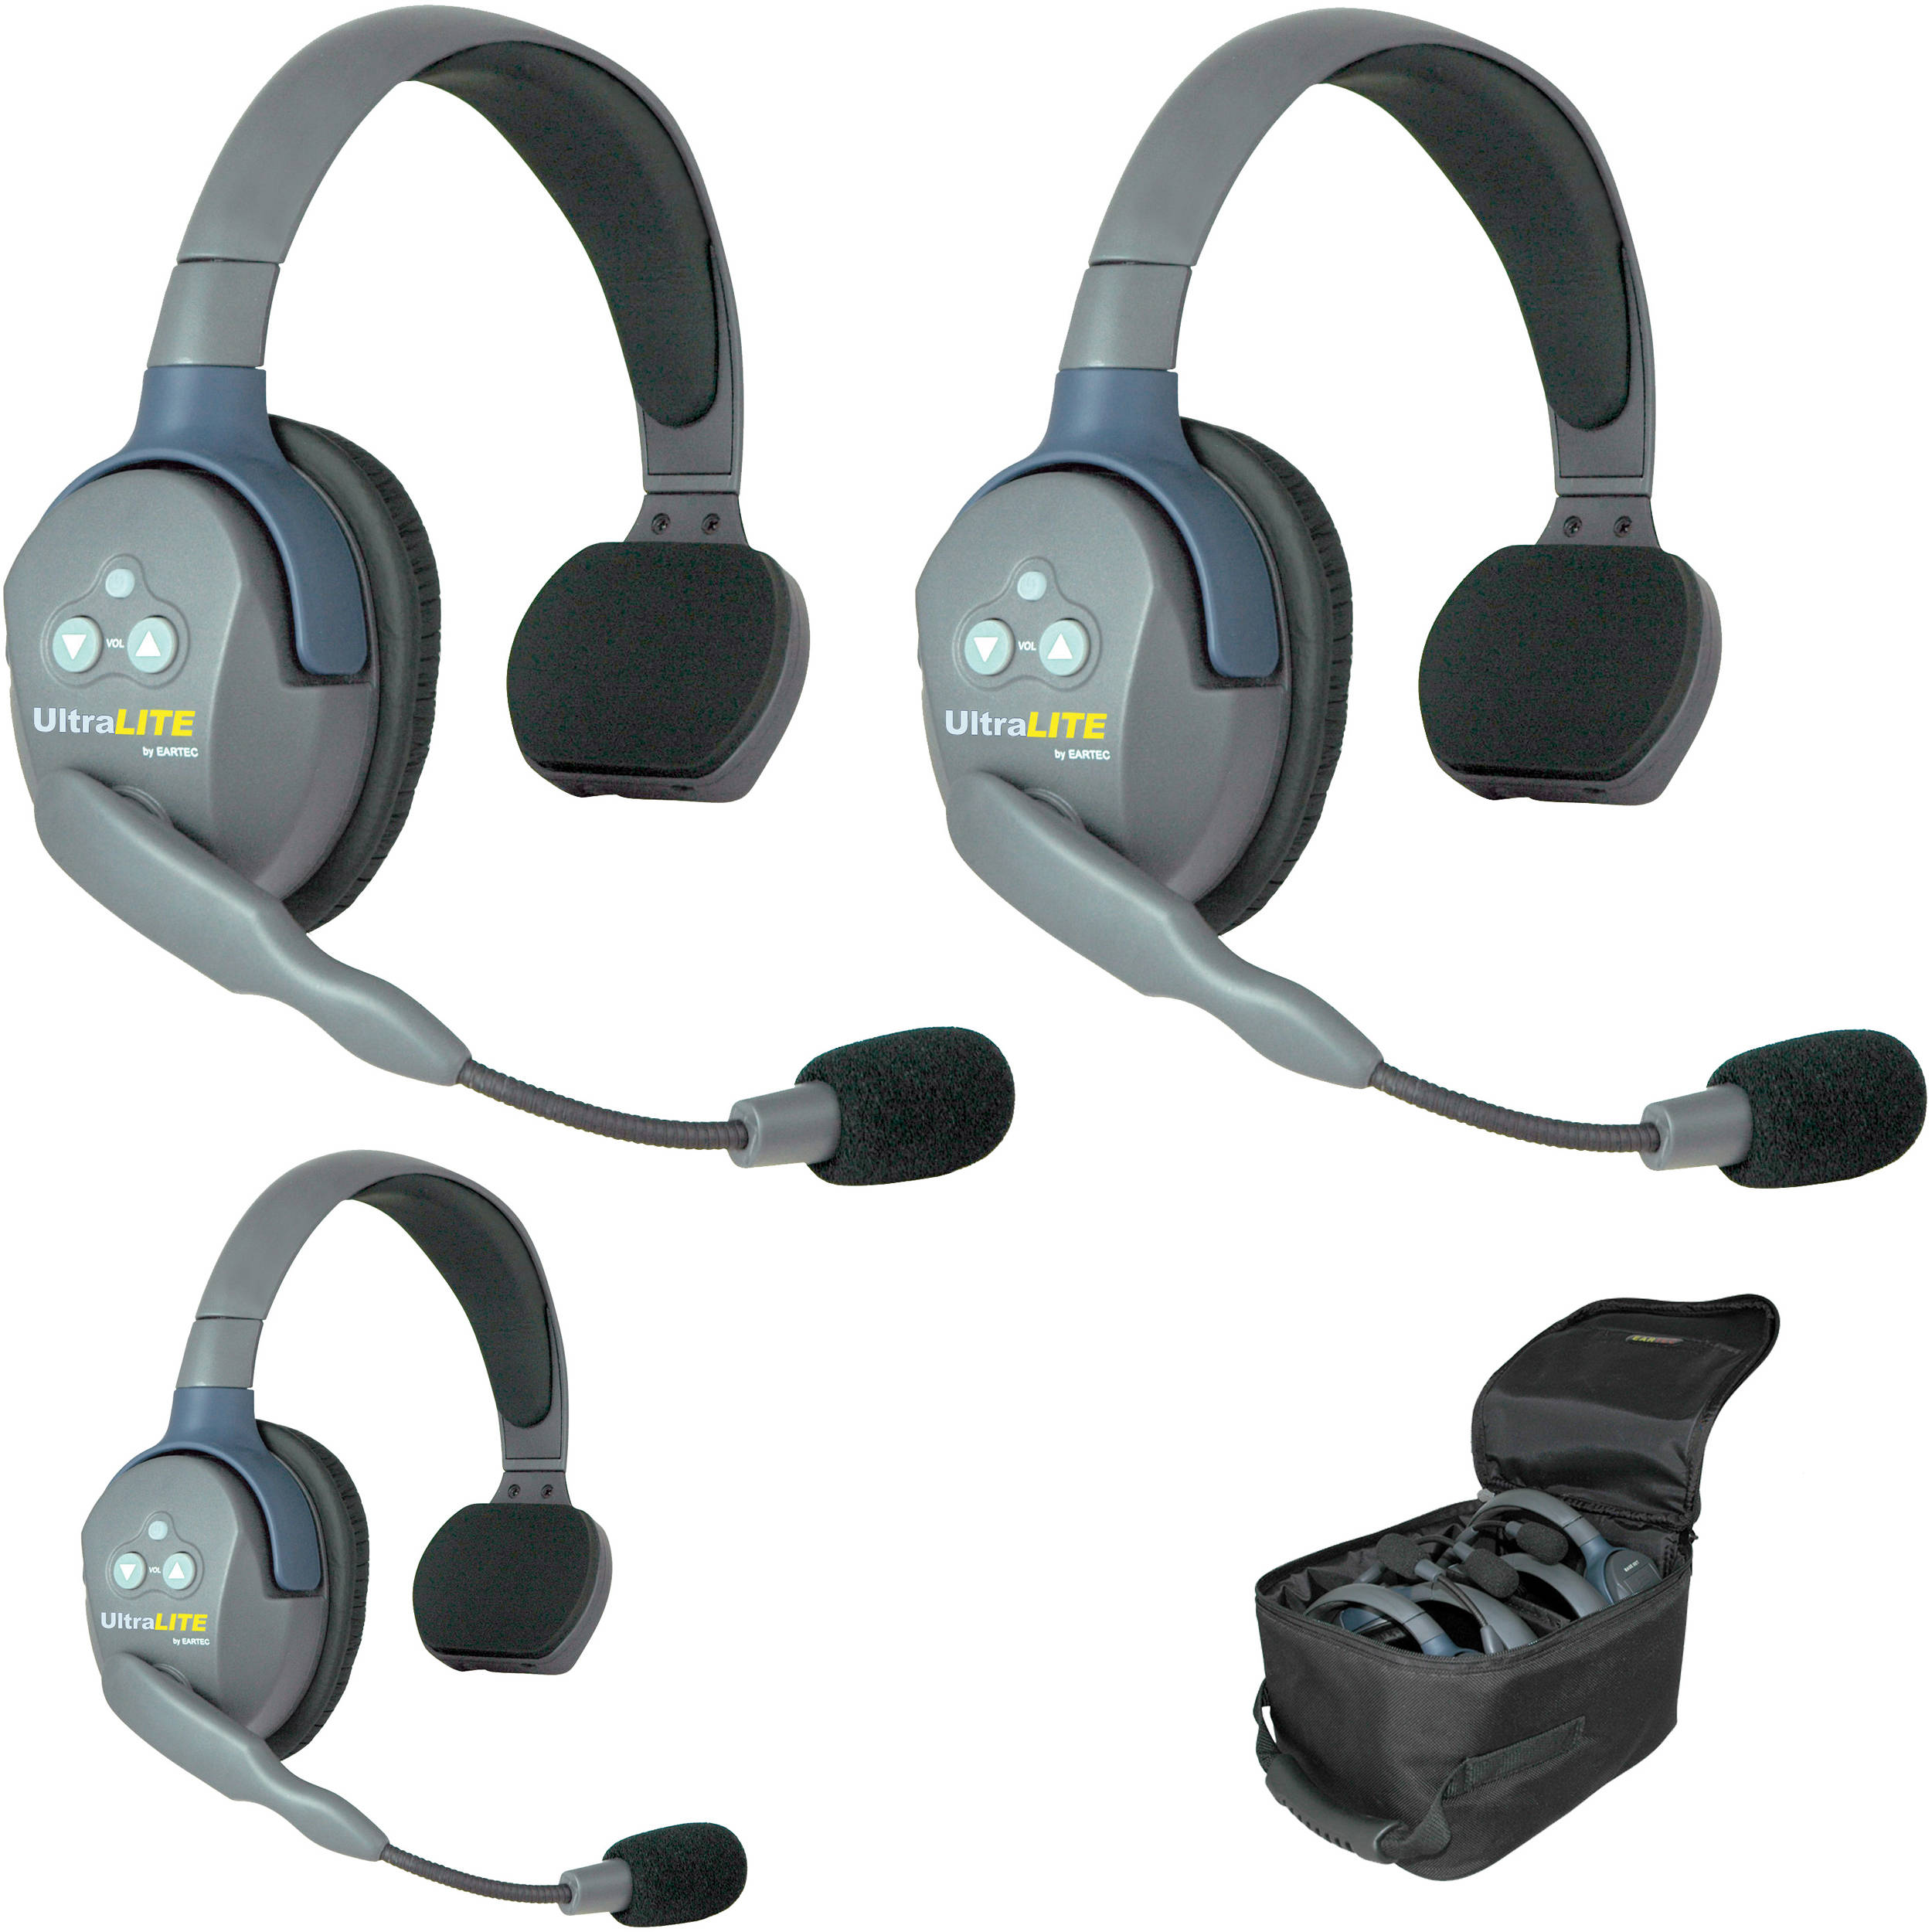 EARTEC ULTRALITE 3 SINGLE HEADSET HD